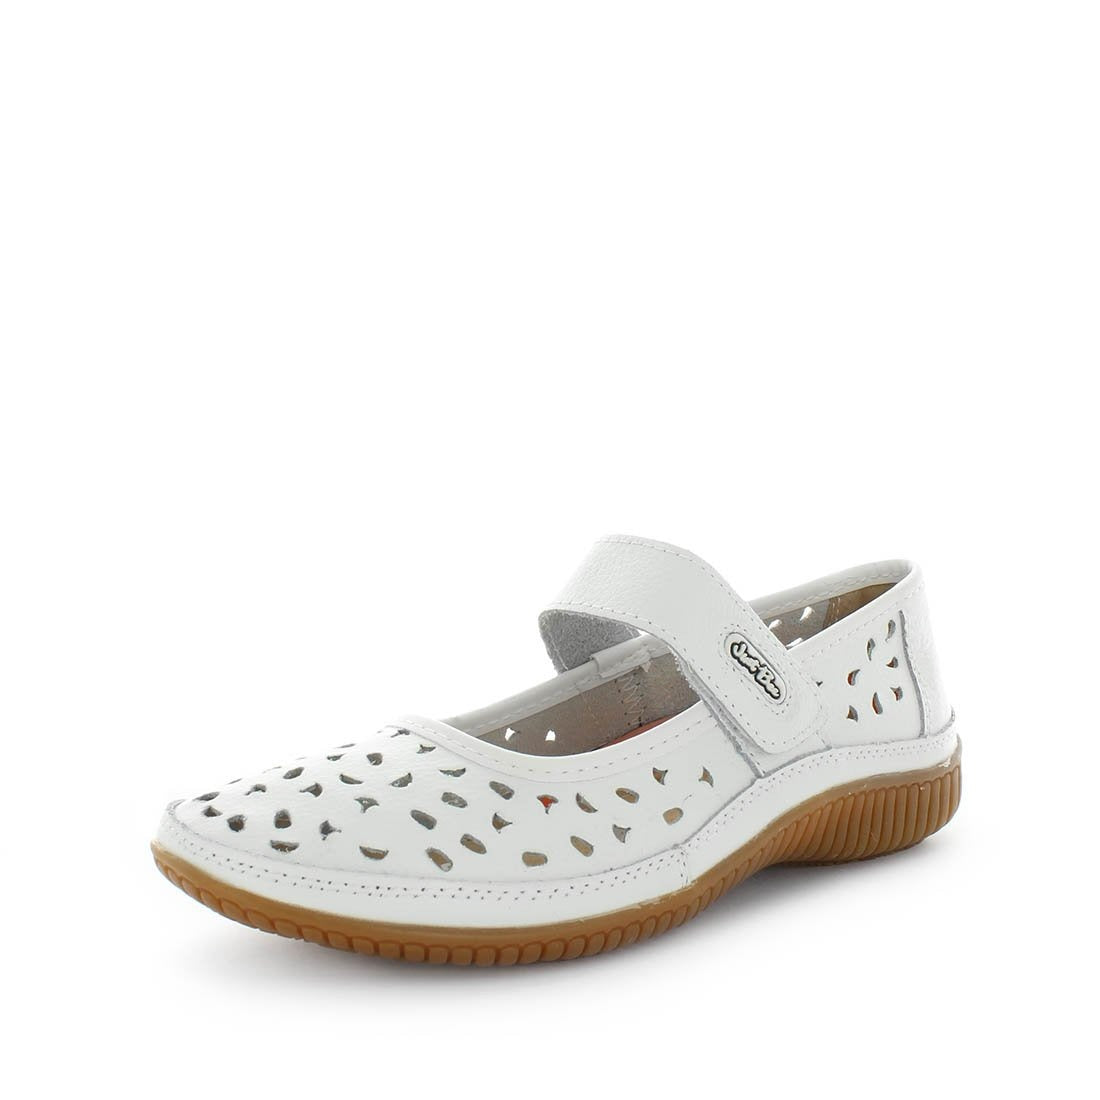 womens mary janes, womens classic flats, womens leather shoes, just bee